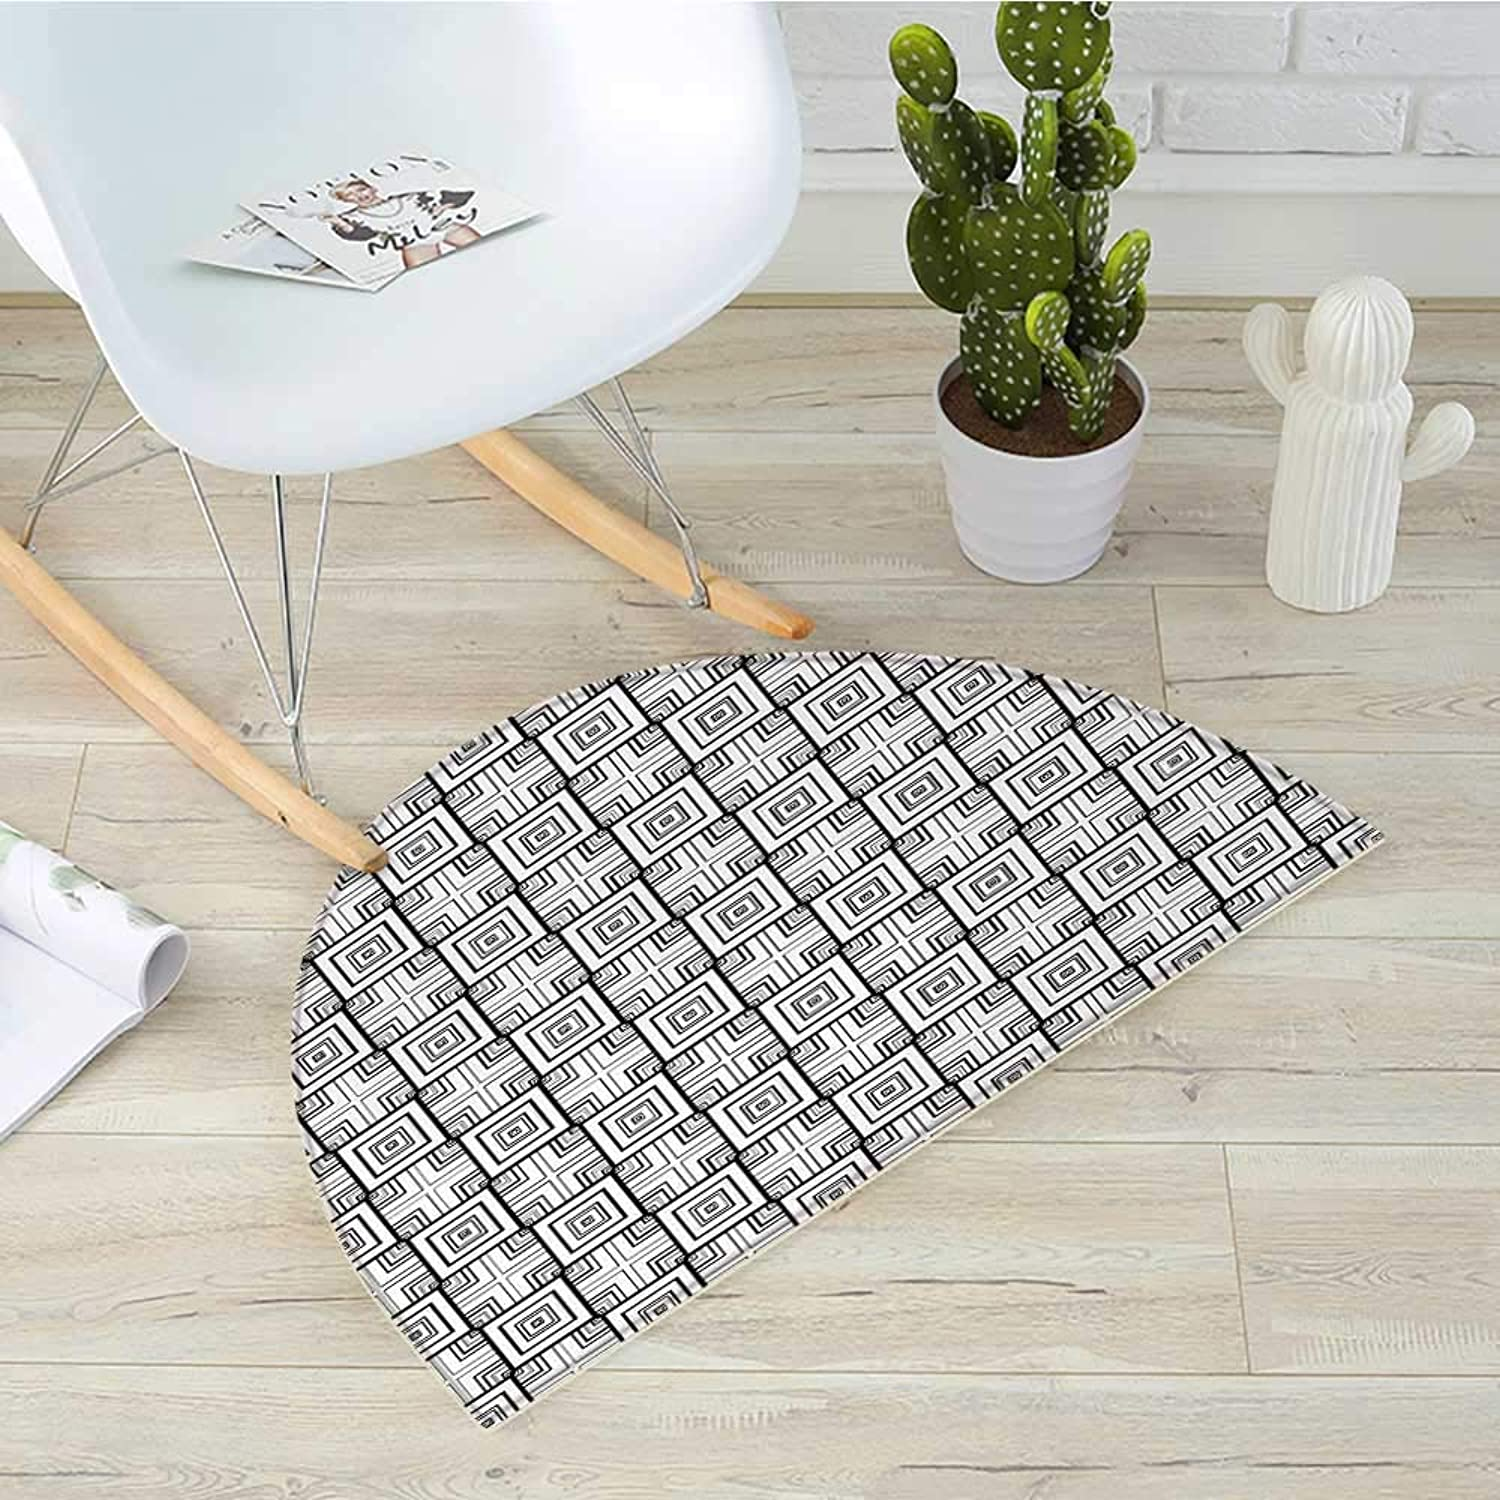 Black and White Half Round Door mats Geometrical Pattern with Overlapping Squares and Optical Illusion Effect Bathroom Mat H 23.6  xD 35.4  Black White